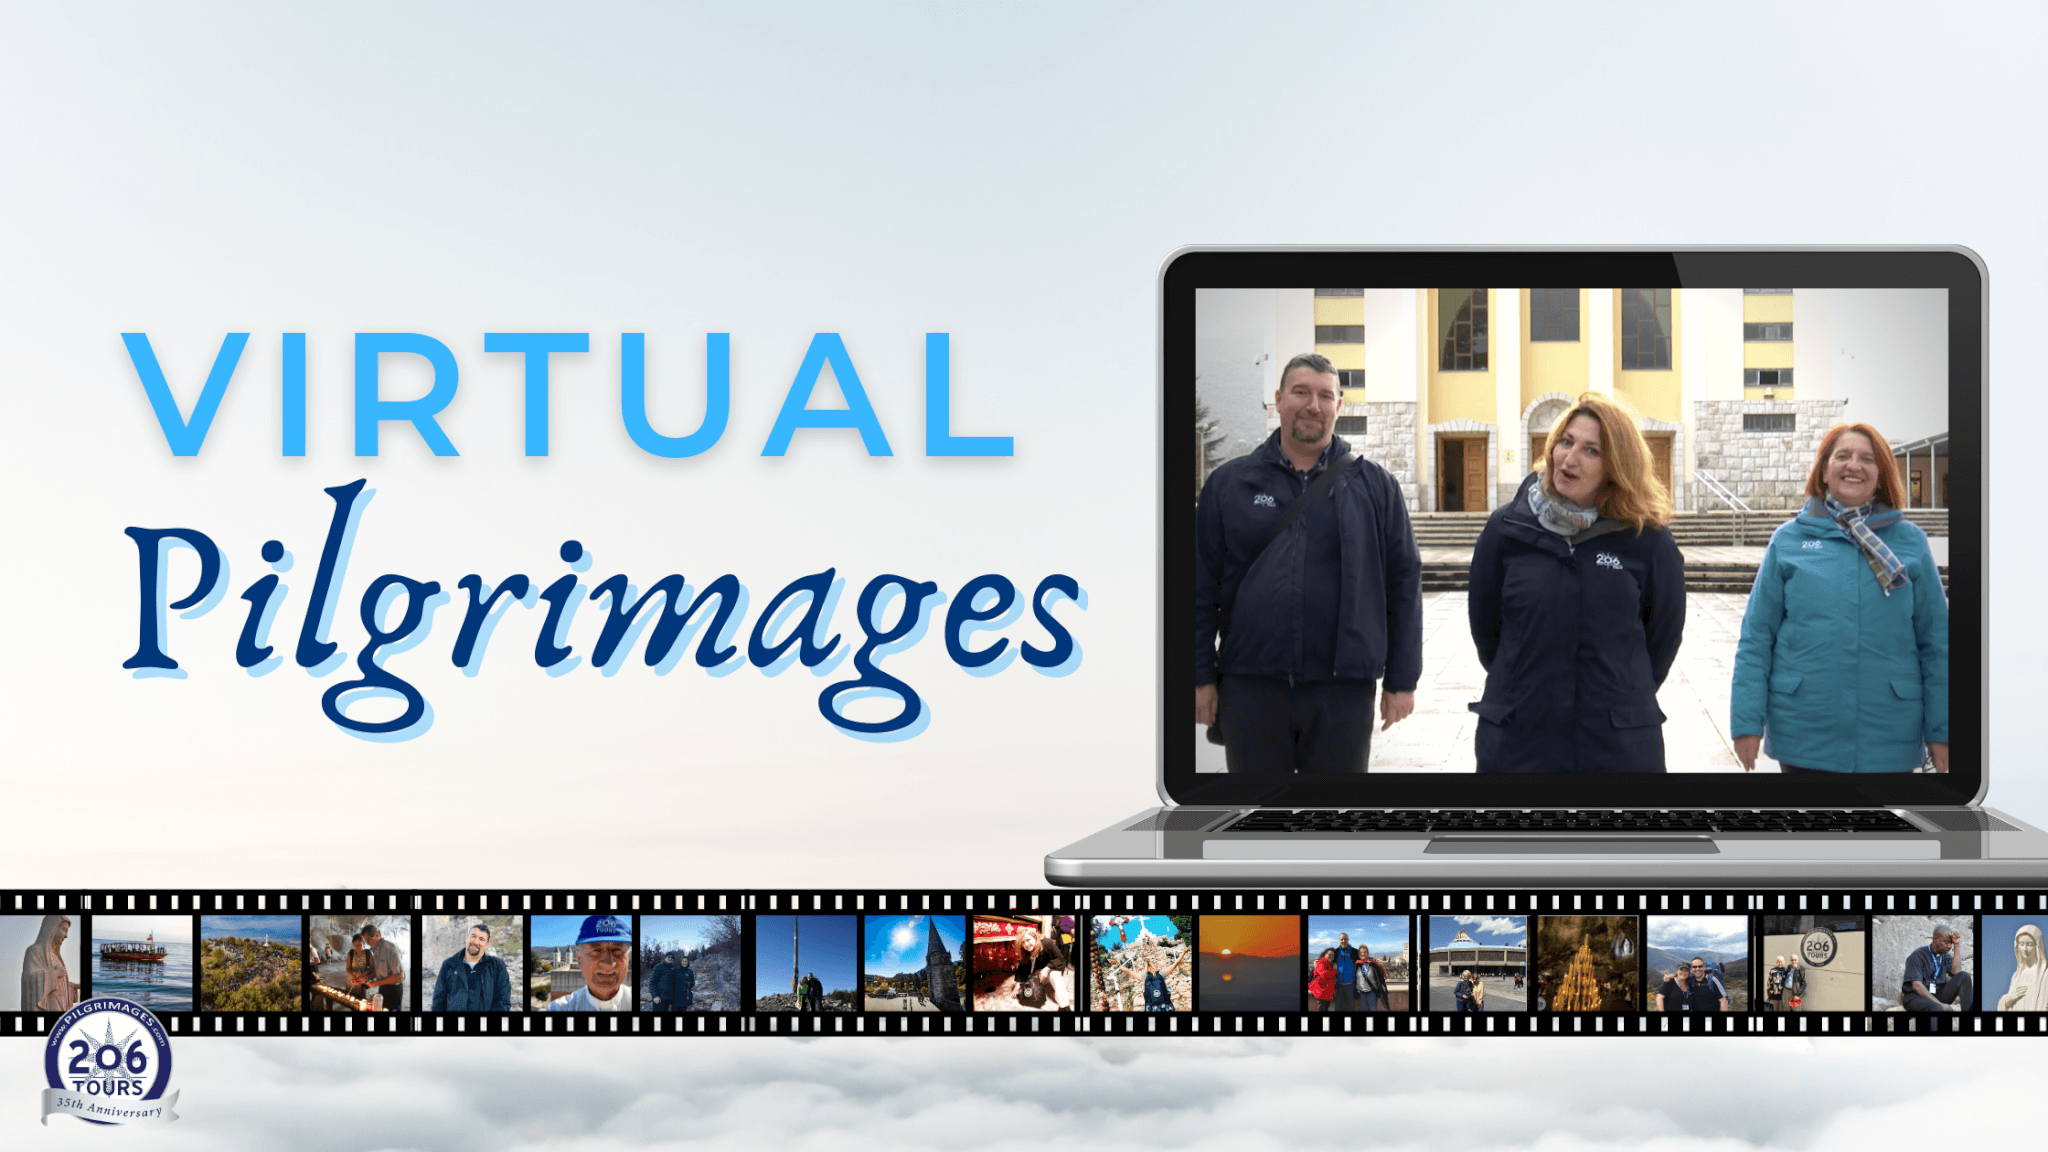 206 Tours virtual pilgrimage